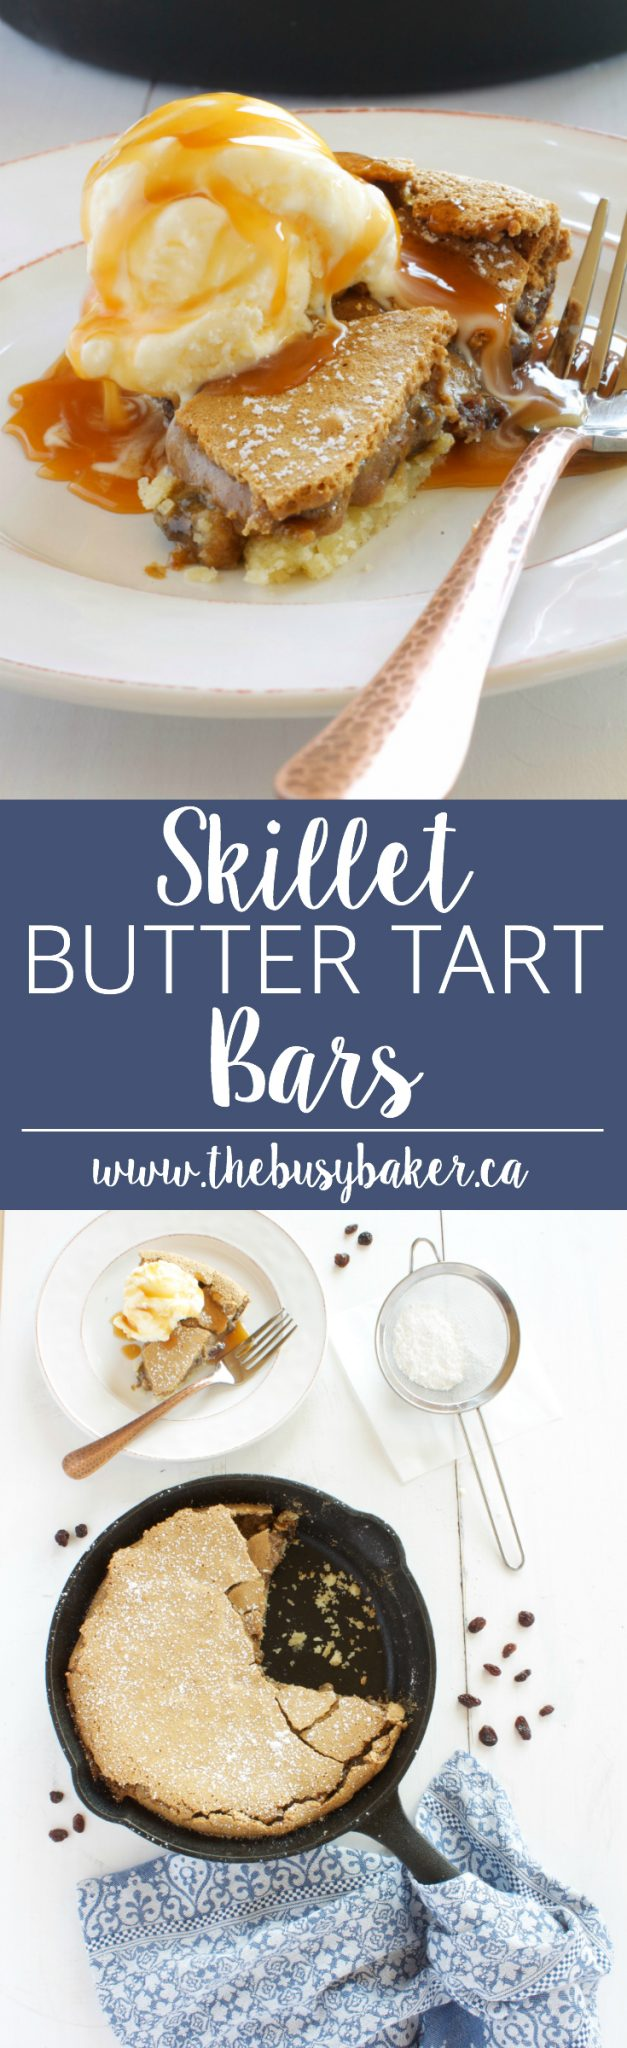 These Skillet Butter Tart Bars are just like classic Canadian butter tarts with a tender shortbread base, chewy butter tart filling, ice cream and caramel! Recipe from thebusybaker.ca! via @busybakerblog